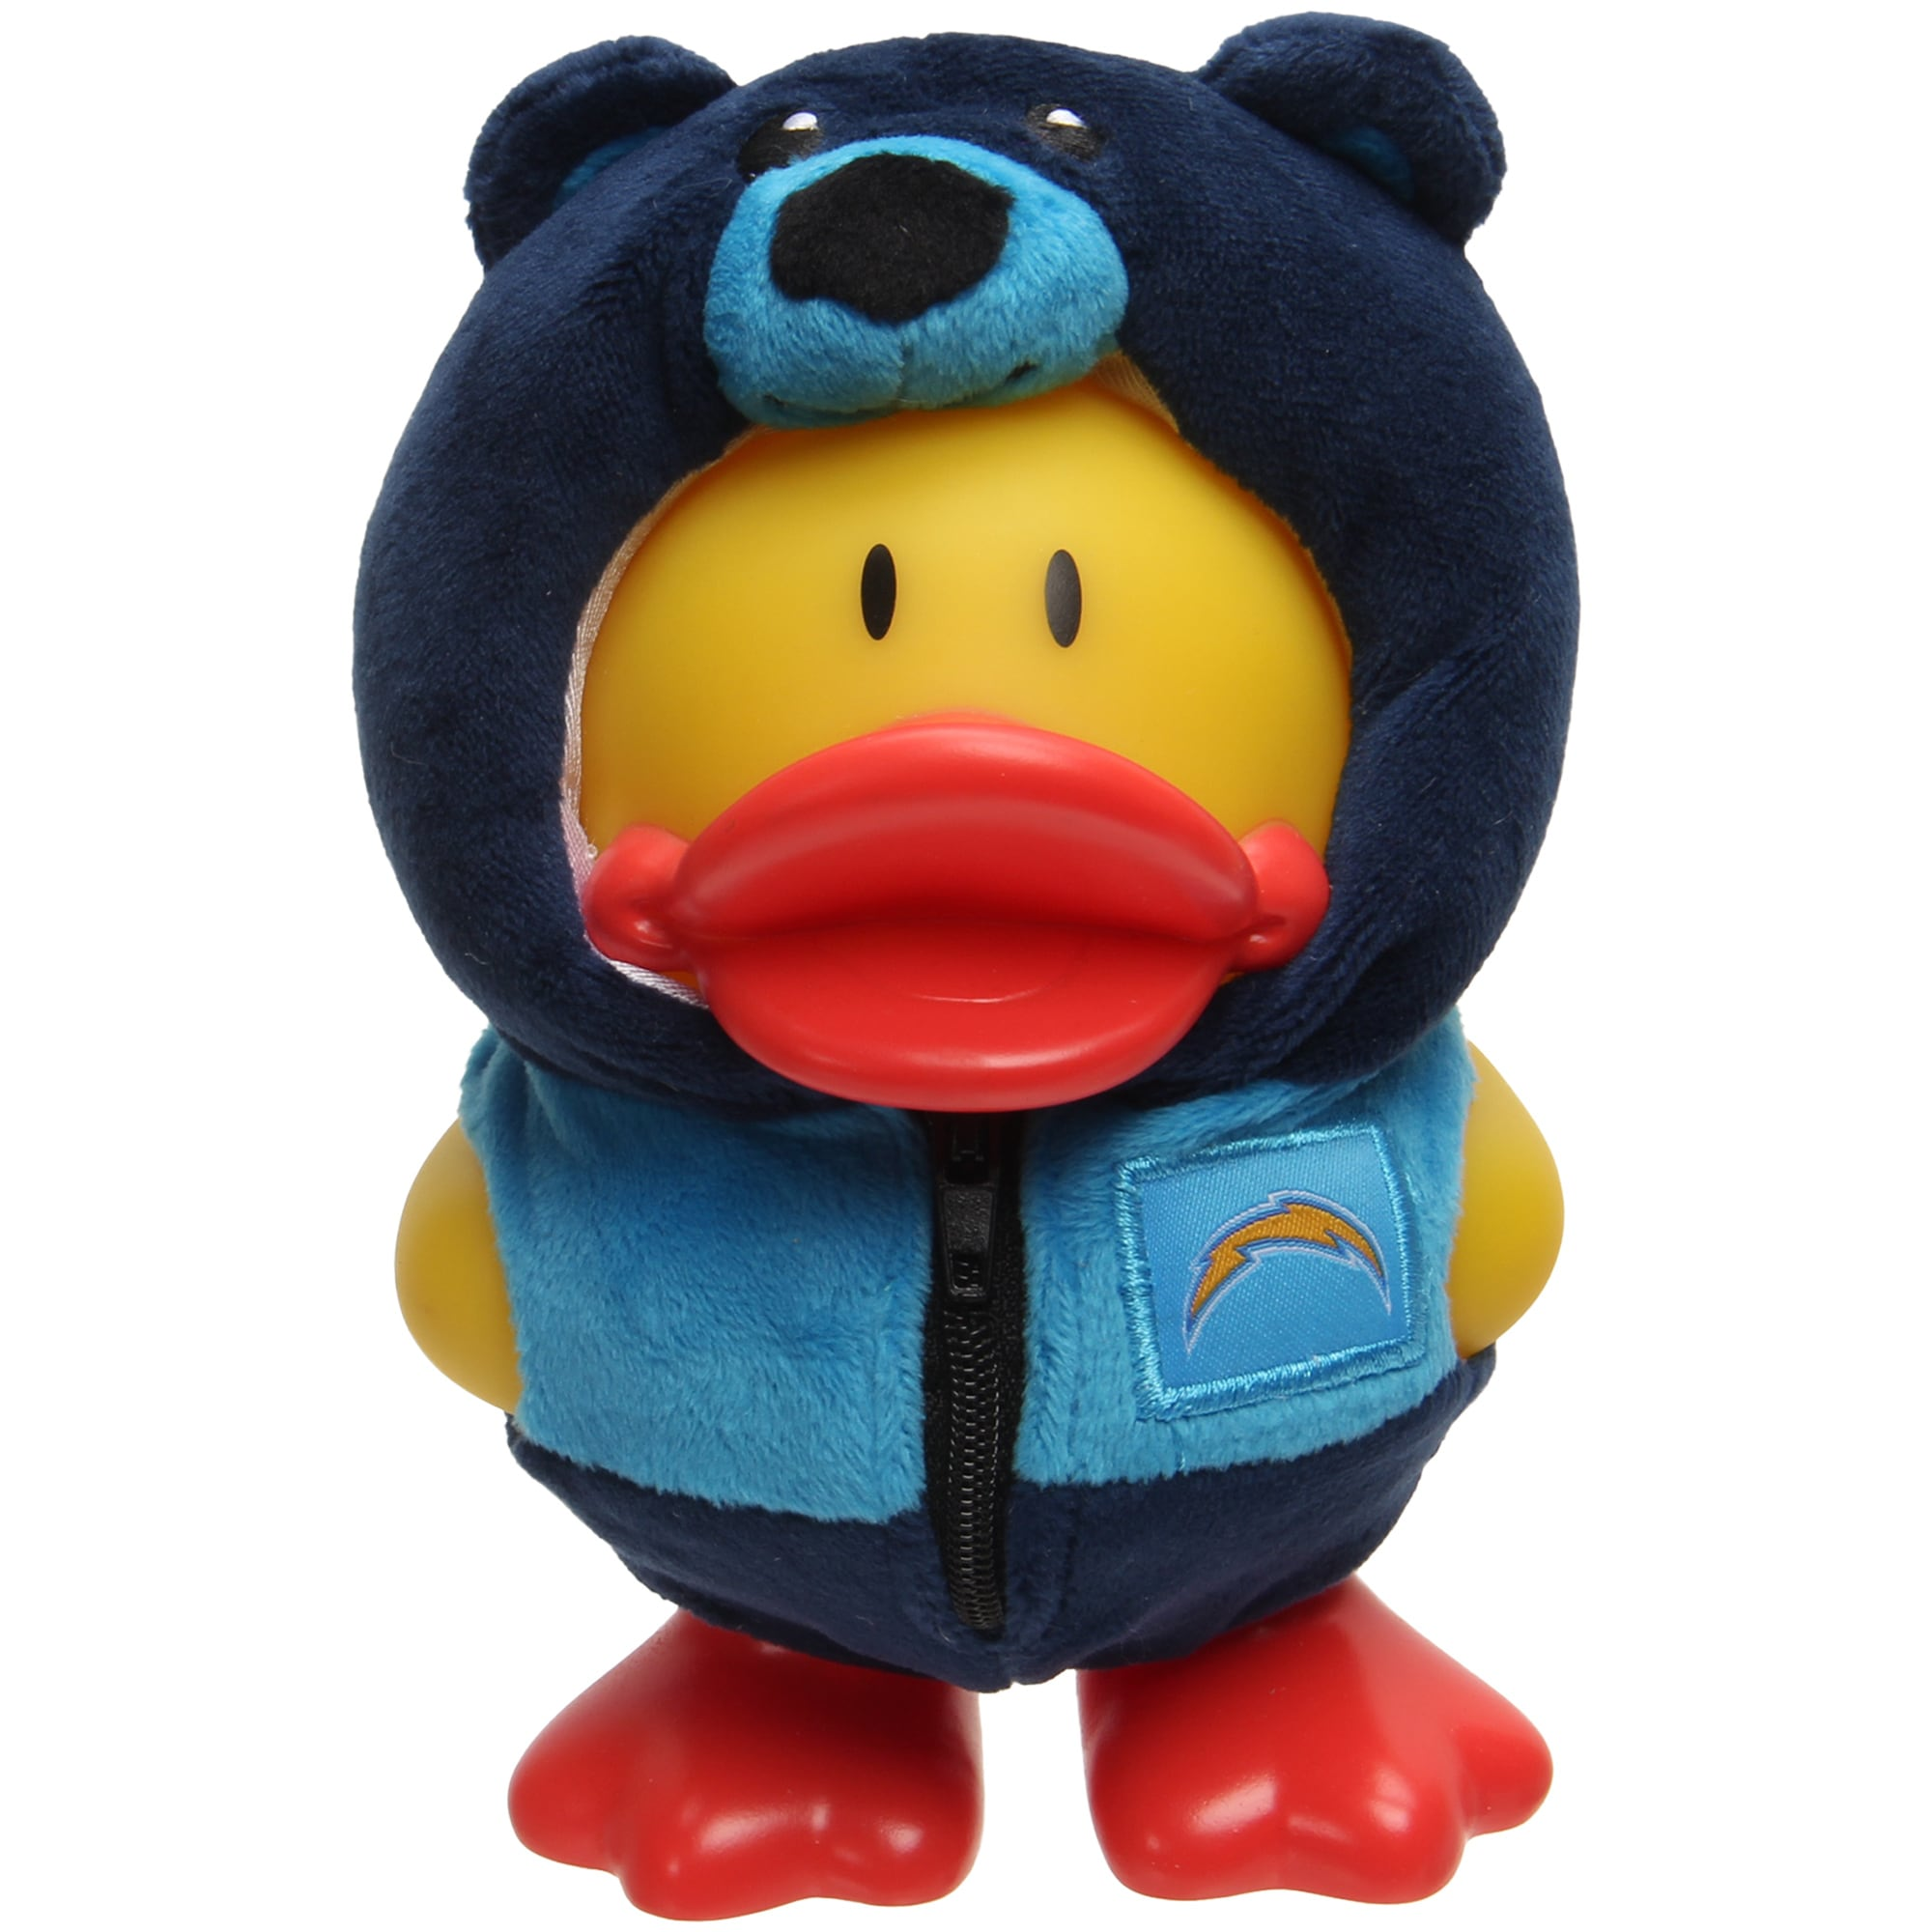 Detroit Lions Mascot Duck Bank